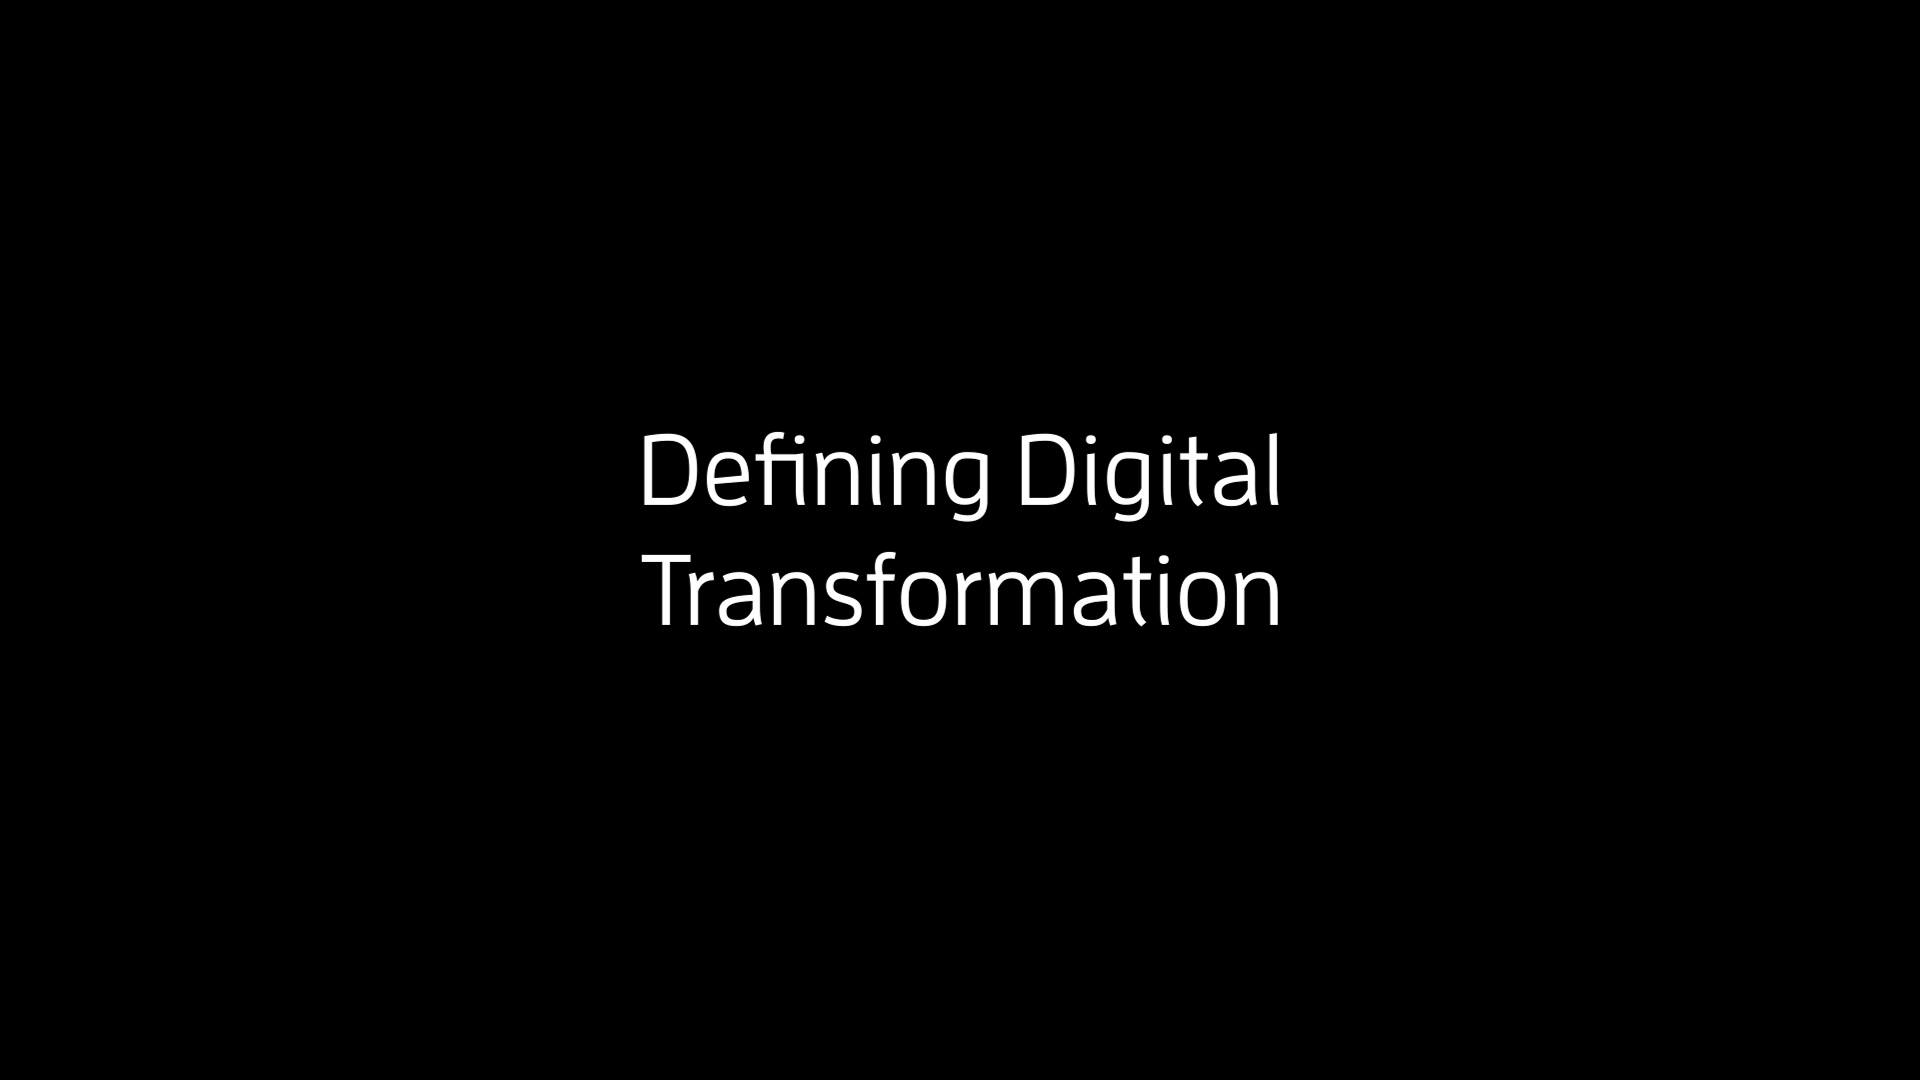 Digital Transformation of Supply Chains - Defining Digital Transformation